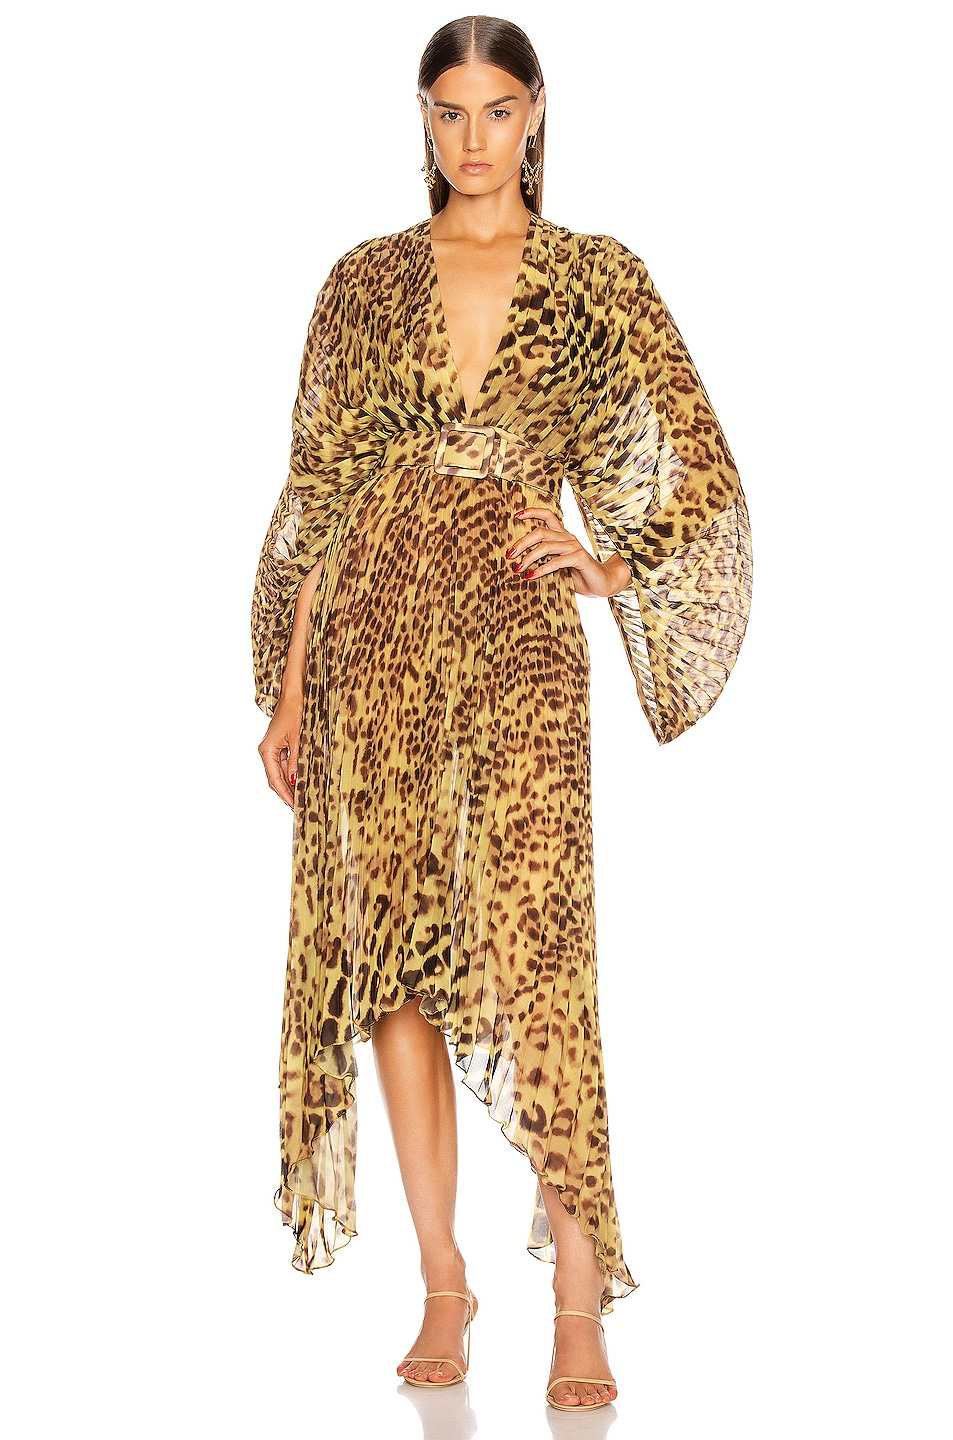 adriana degreas leopard pleated midi dress in brown fwrd. Black Bedroom Furniture Sets. Home Design Ideas